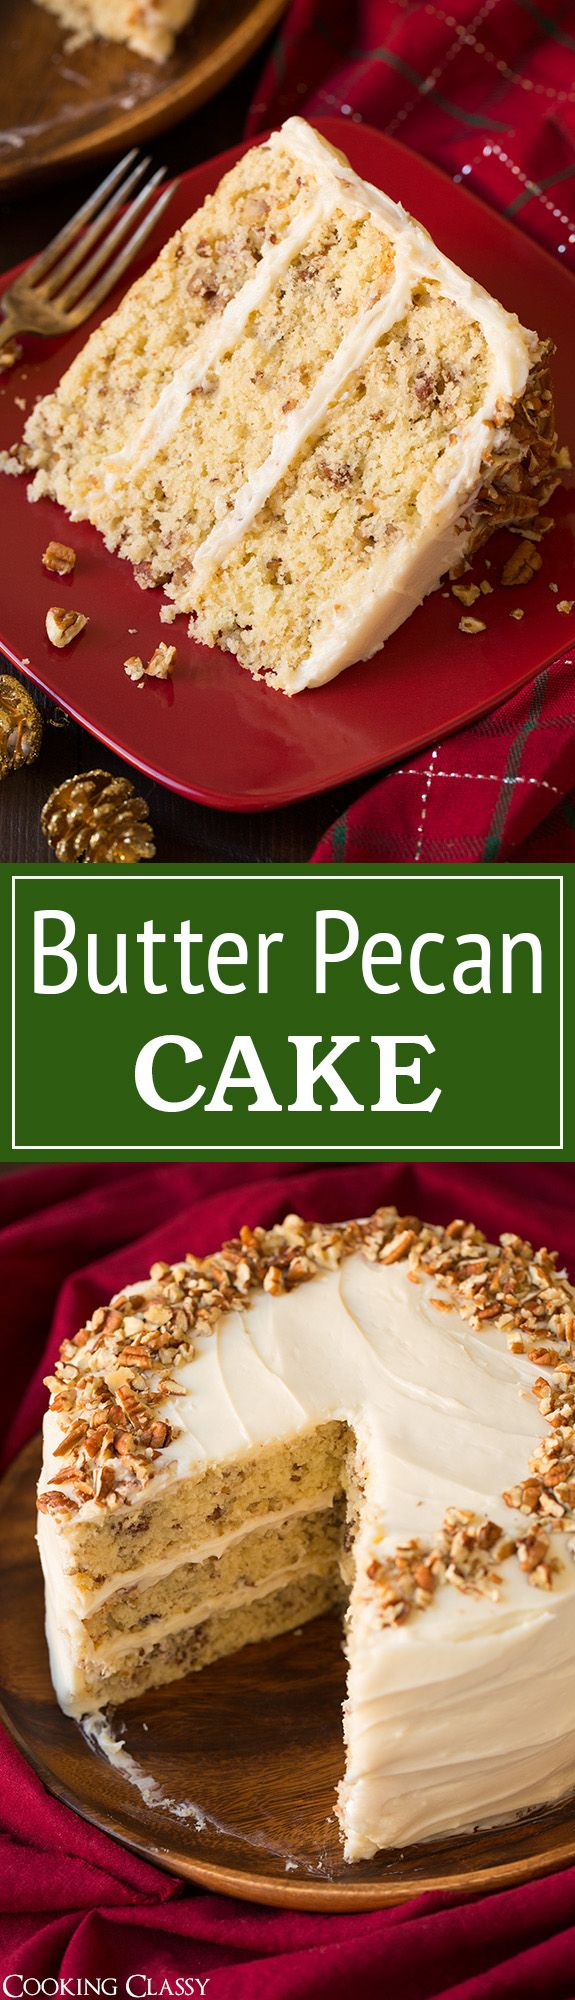 Butter Pecan Cake - we LOVED this cake!! Perfect for Christmas! #fisherunshelled @fishernuts